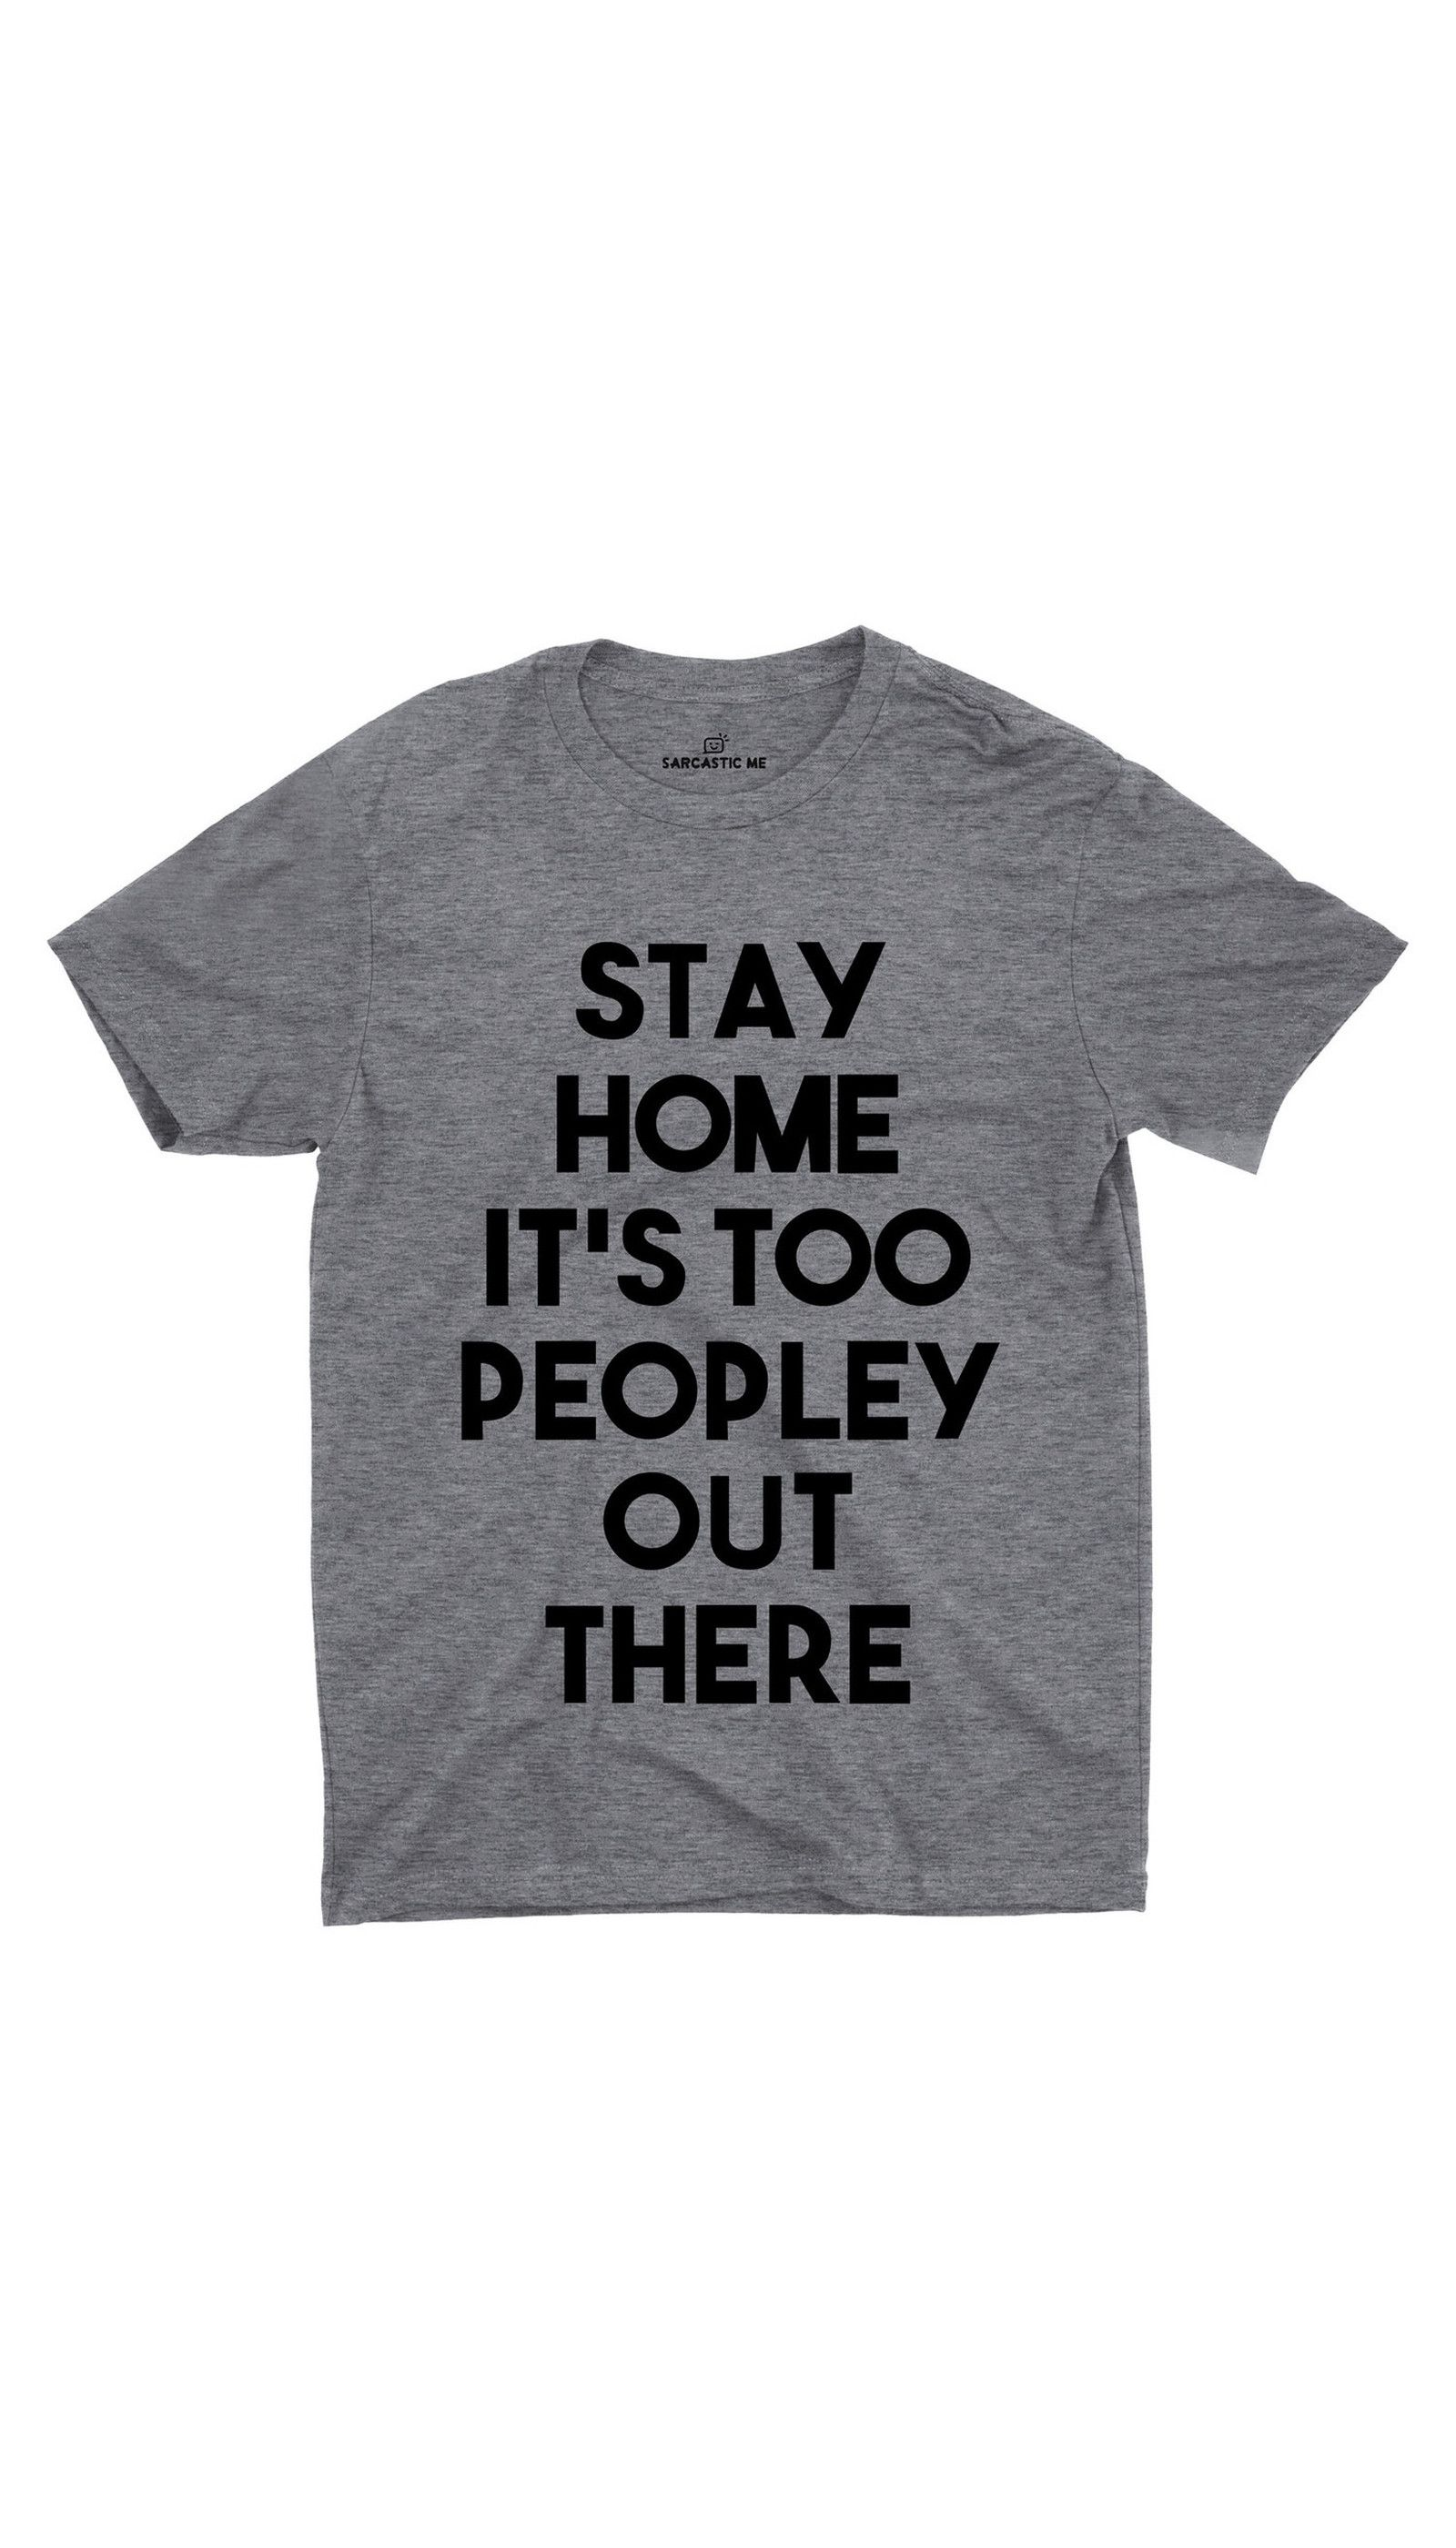 fd48944ac Stay Home It's Too Peopley Out There Gray Unisex T-shirt   Sarcastic ME